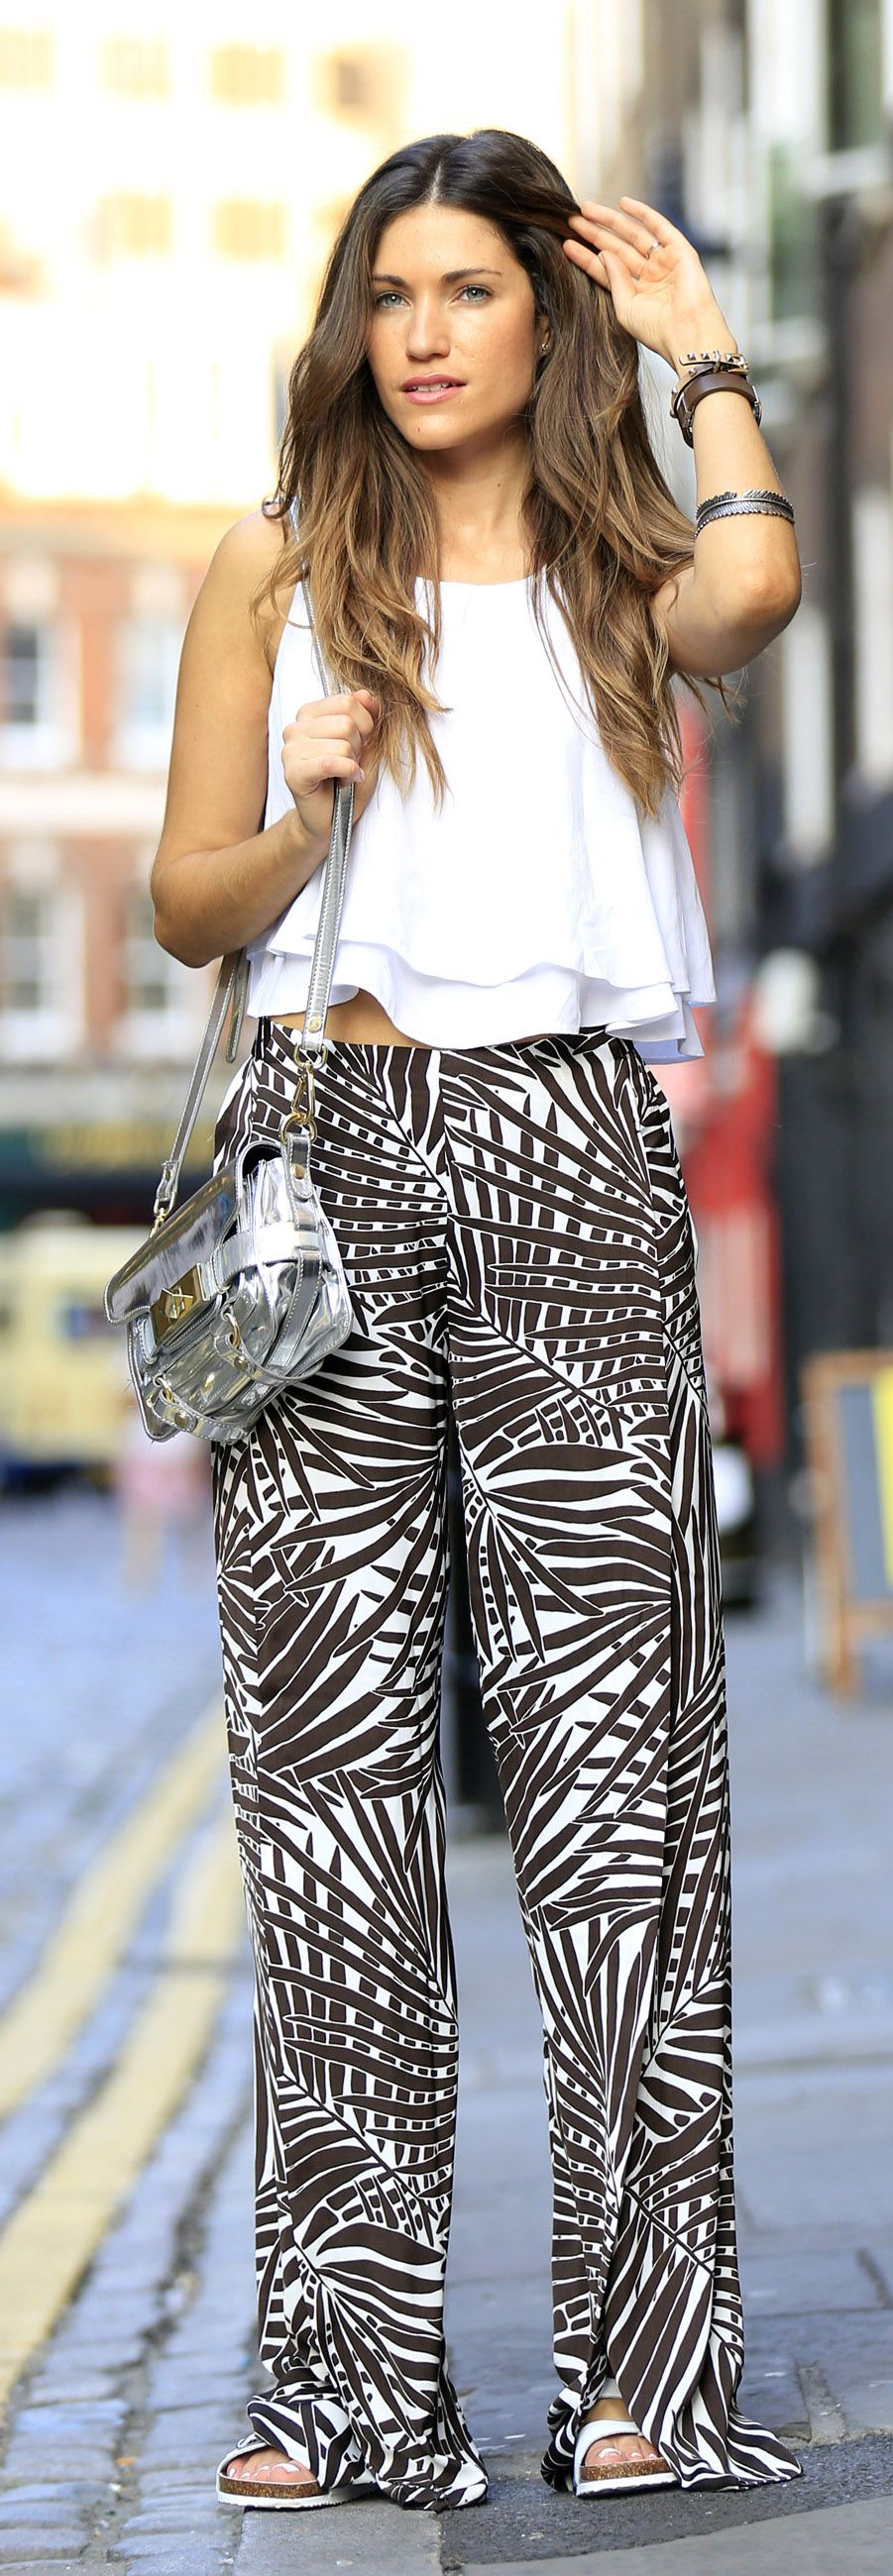 Ariana Chiche is wearing a top and shoes from Zara and the tropical print palazzo trousers are from TopShop